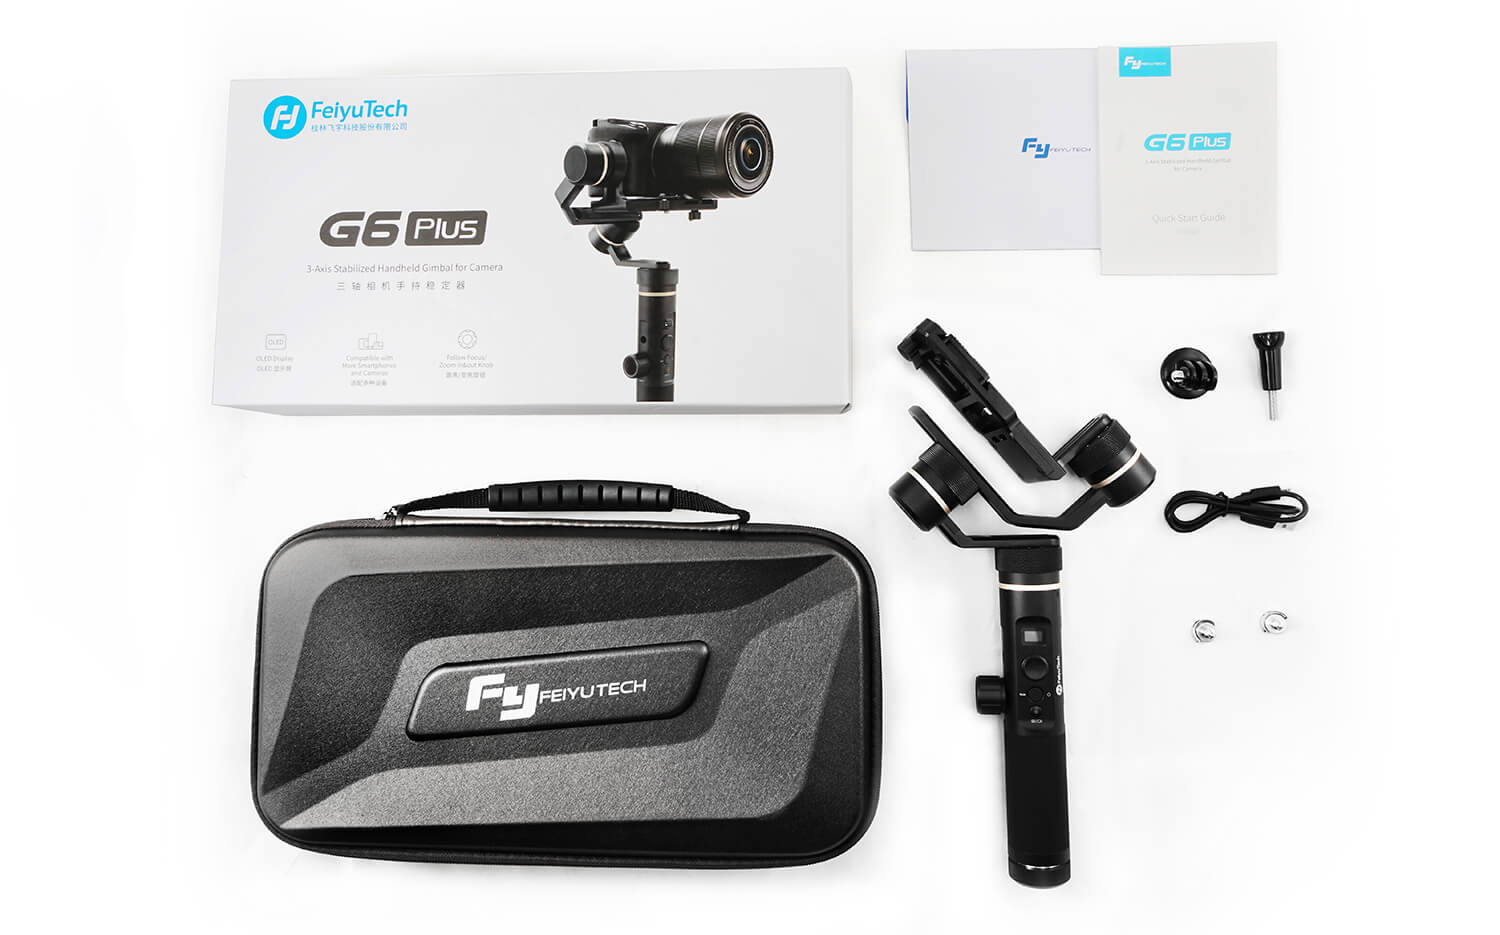 Included in the pack : 1x FeiyuTech G6 plus Stabilizer…